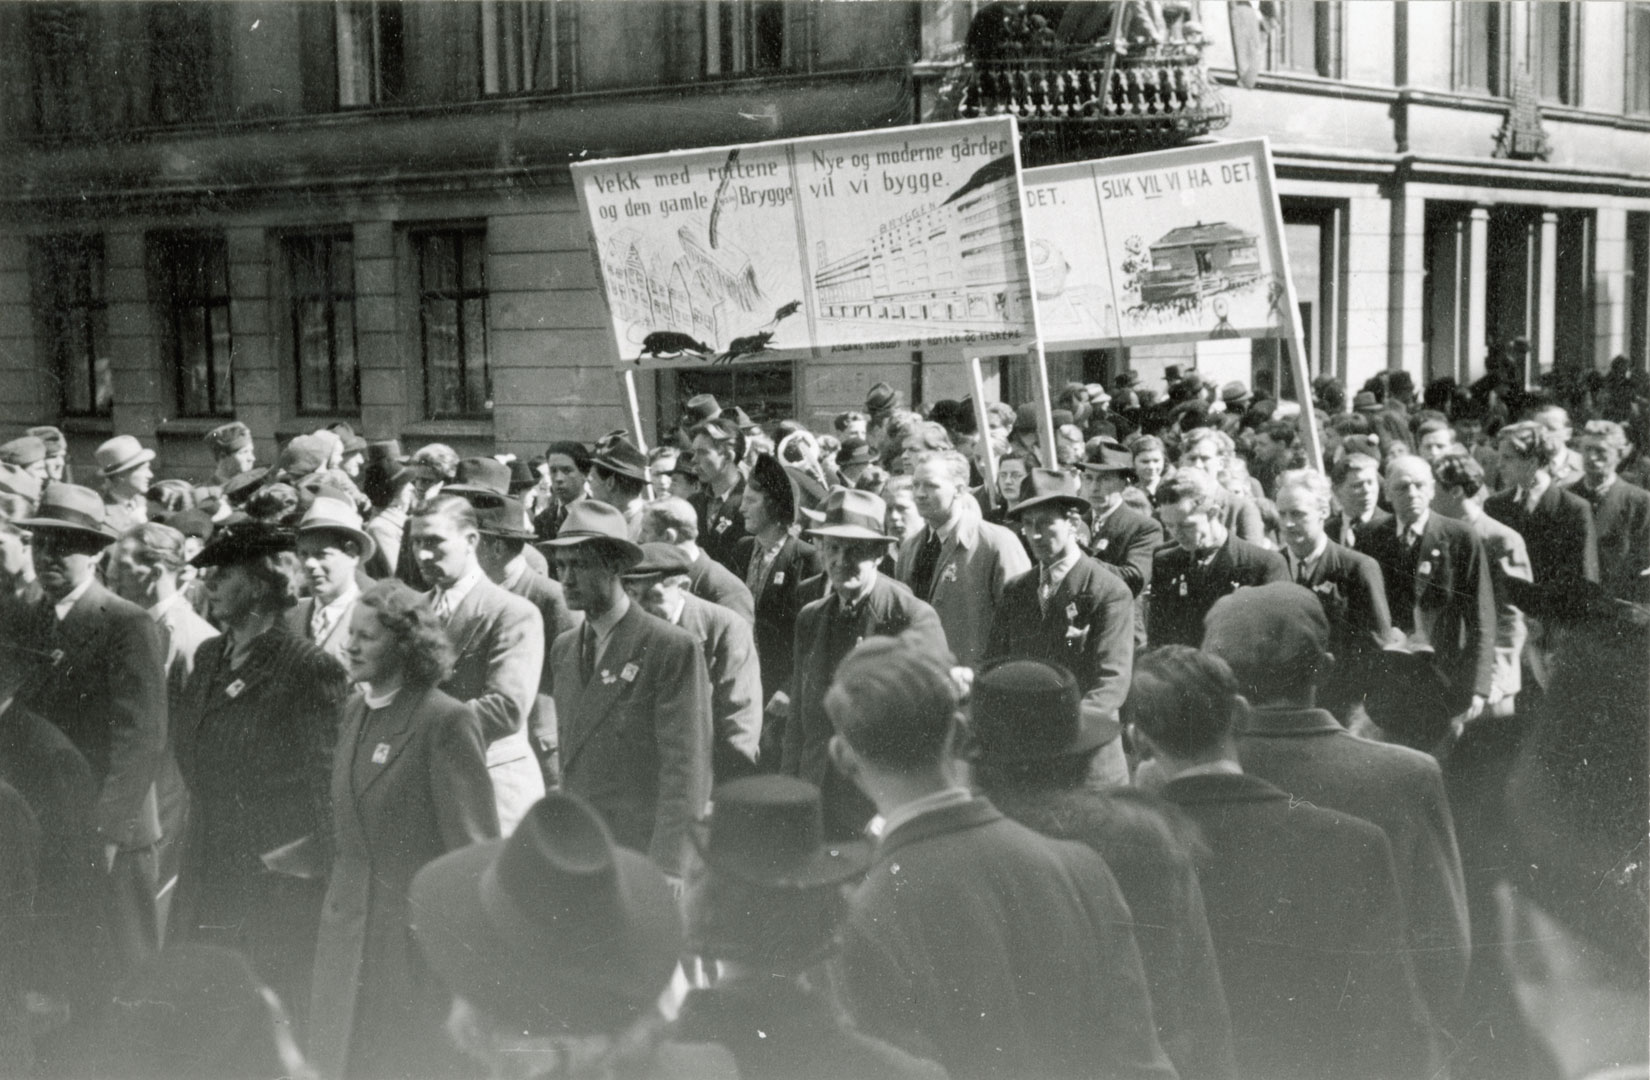 """Demonstration for the demolishing of Bryggen in Bergen in 1945/1946. There were calls to demolish """"German bryggen"""" around 1900, after the Second World War and in the 1950s. Today, Bryggen in Bergen is considered a national treasure and has been inscribed on the UNESCO World Heritage List. It is also one of Norway's top tourist attractions. Photo: Unknown, the Directorate for Cultural Heritage"""